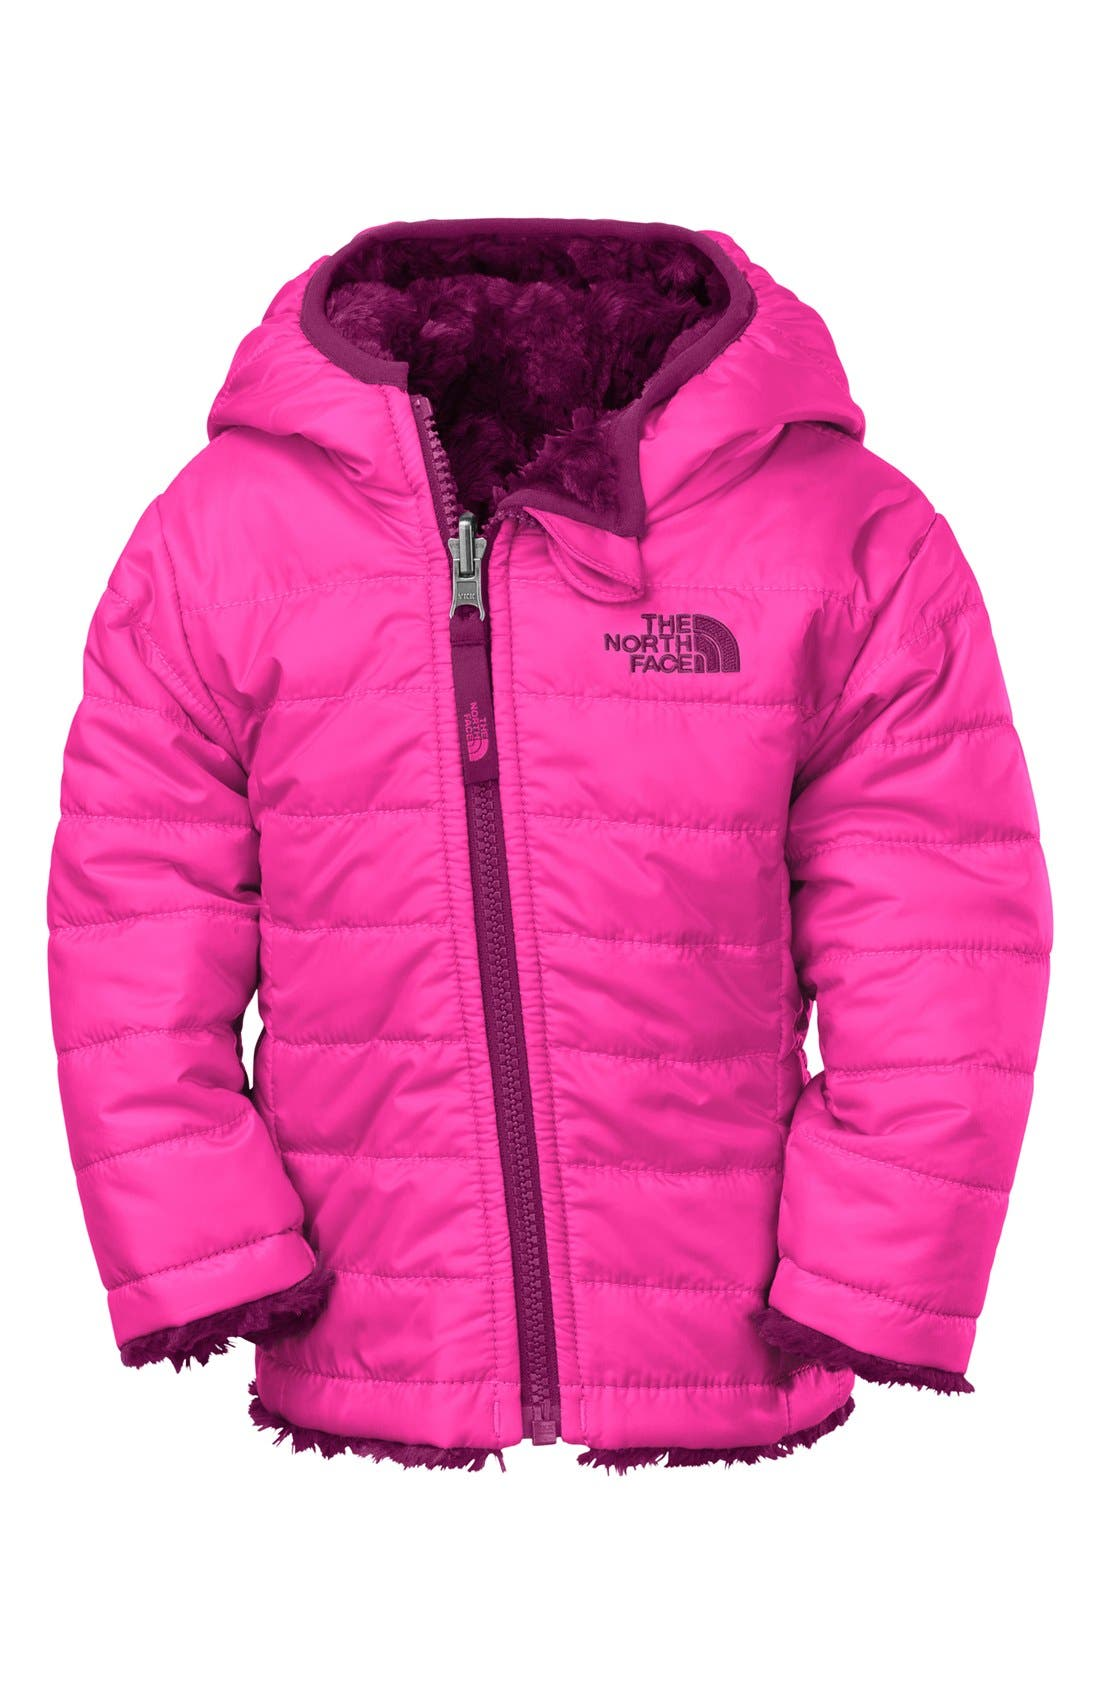 Alternate Image 1 Selected - The North Face 'Mossbud Swirl' Reversible Water Repellent Jacket (Baby Girls)